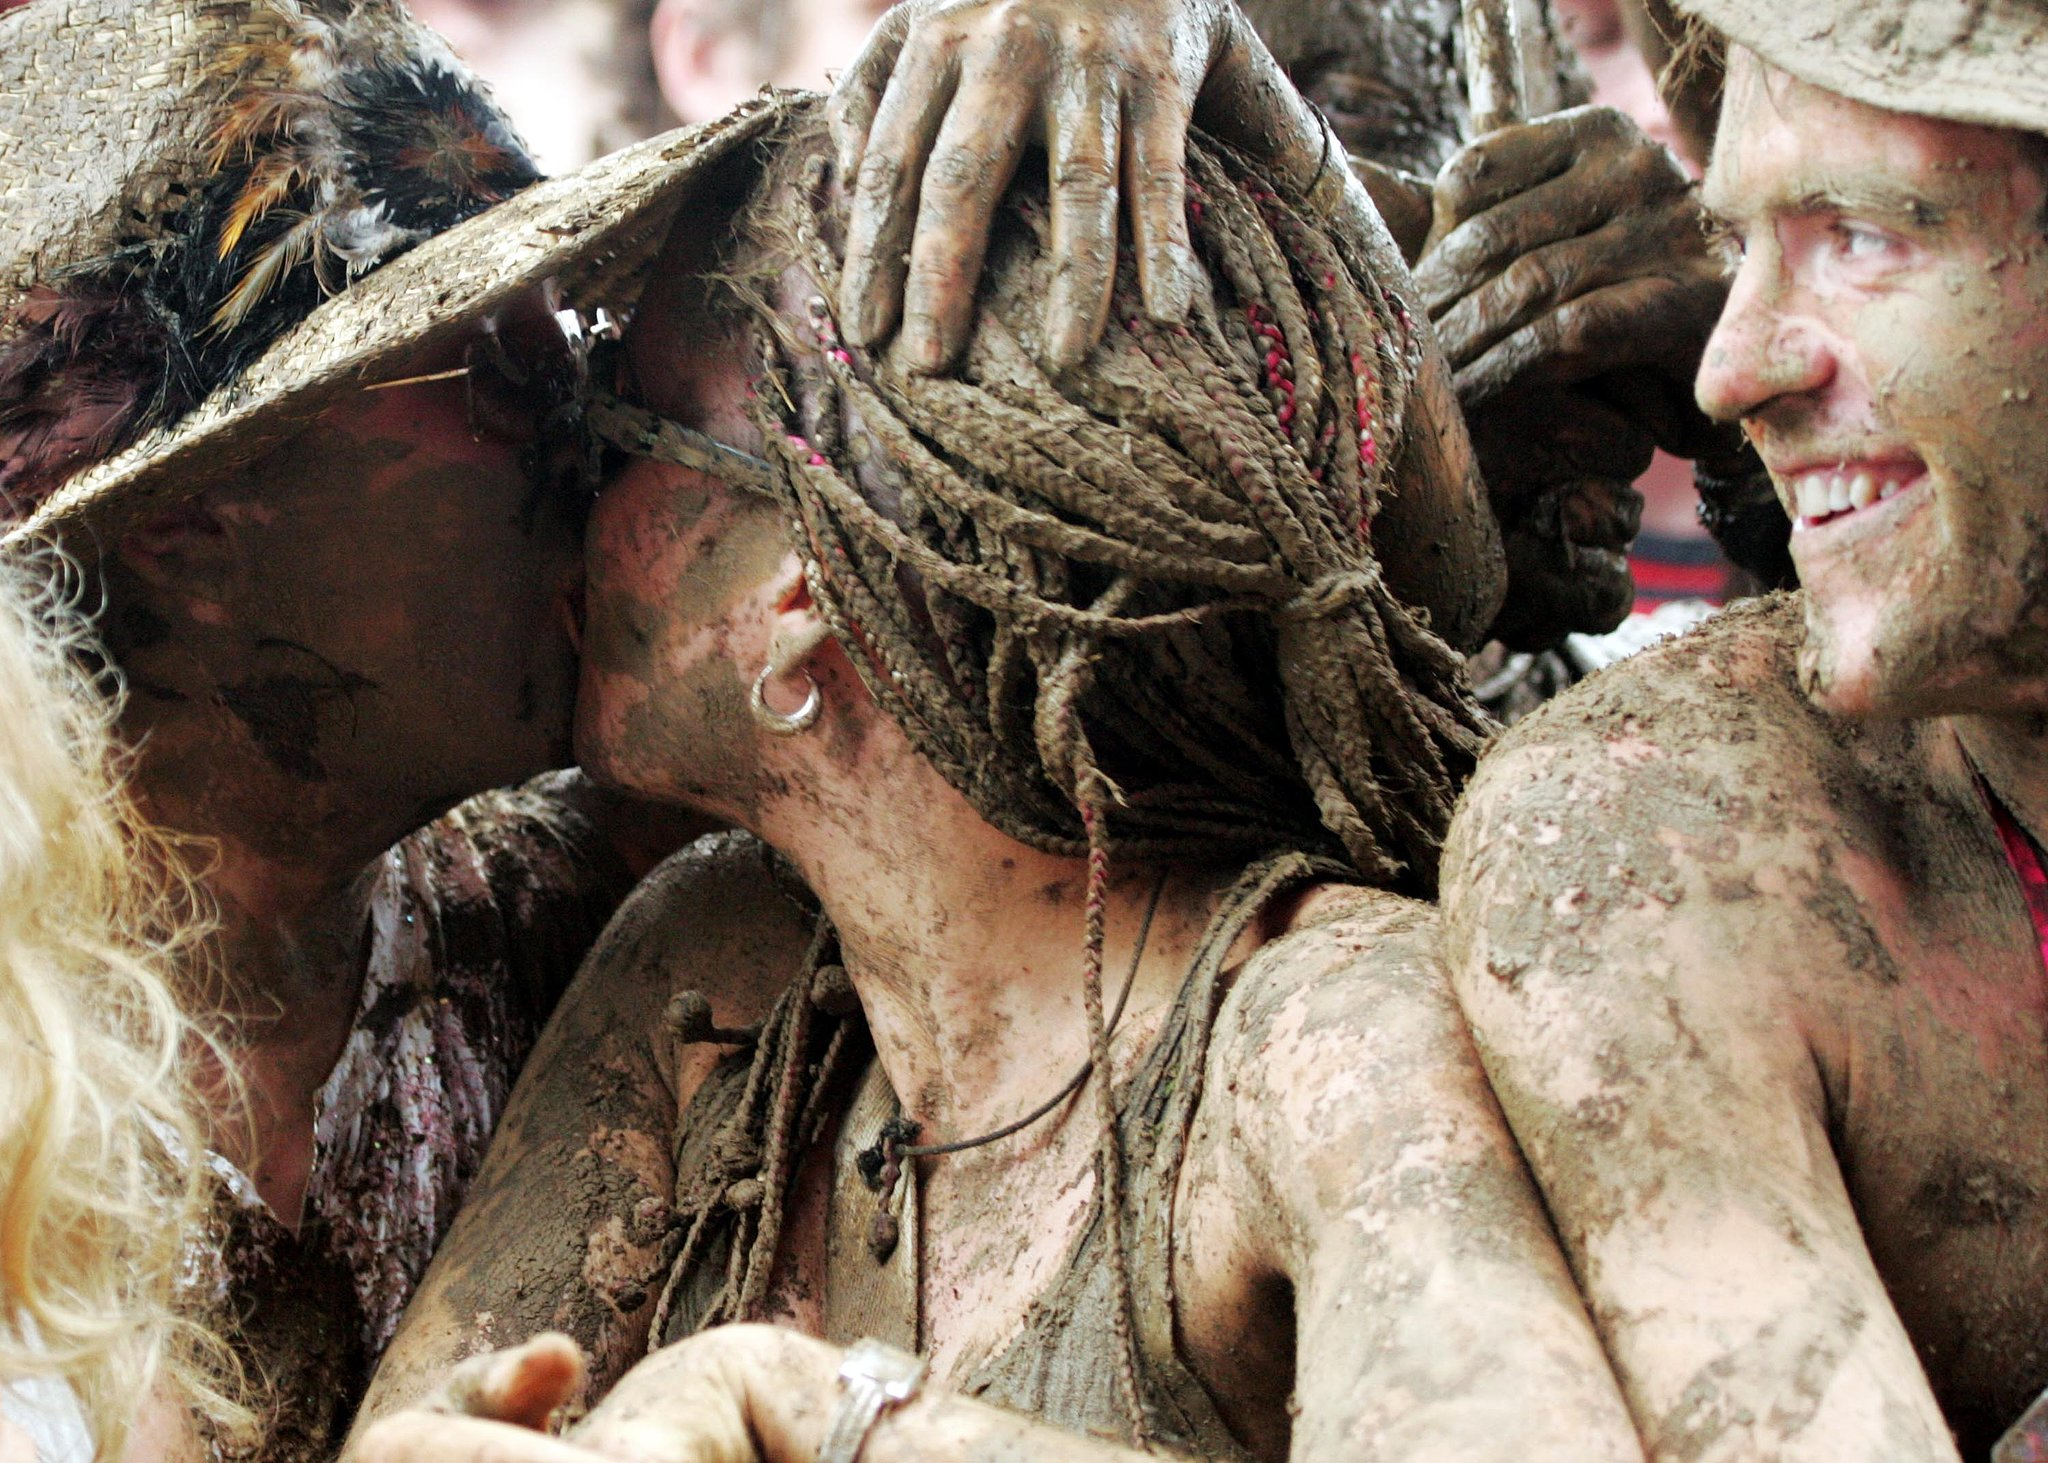 A very muddy twosome kissed at the Glastonbury Music Festival in England.